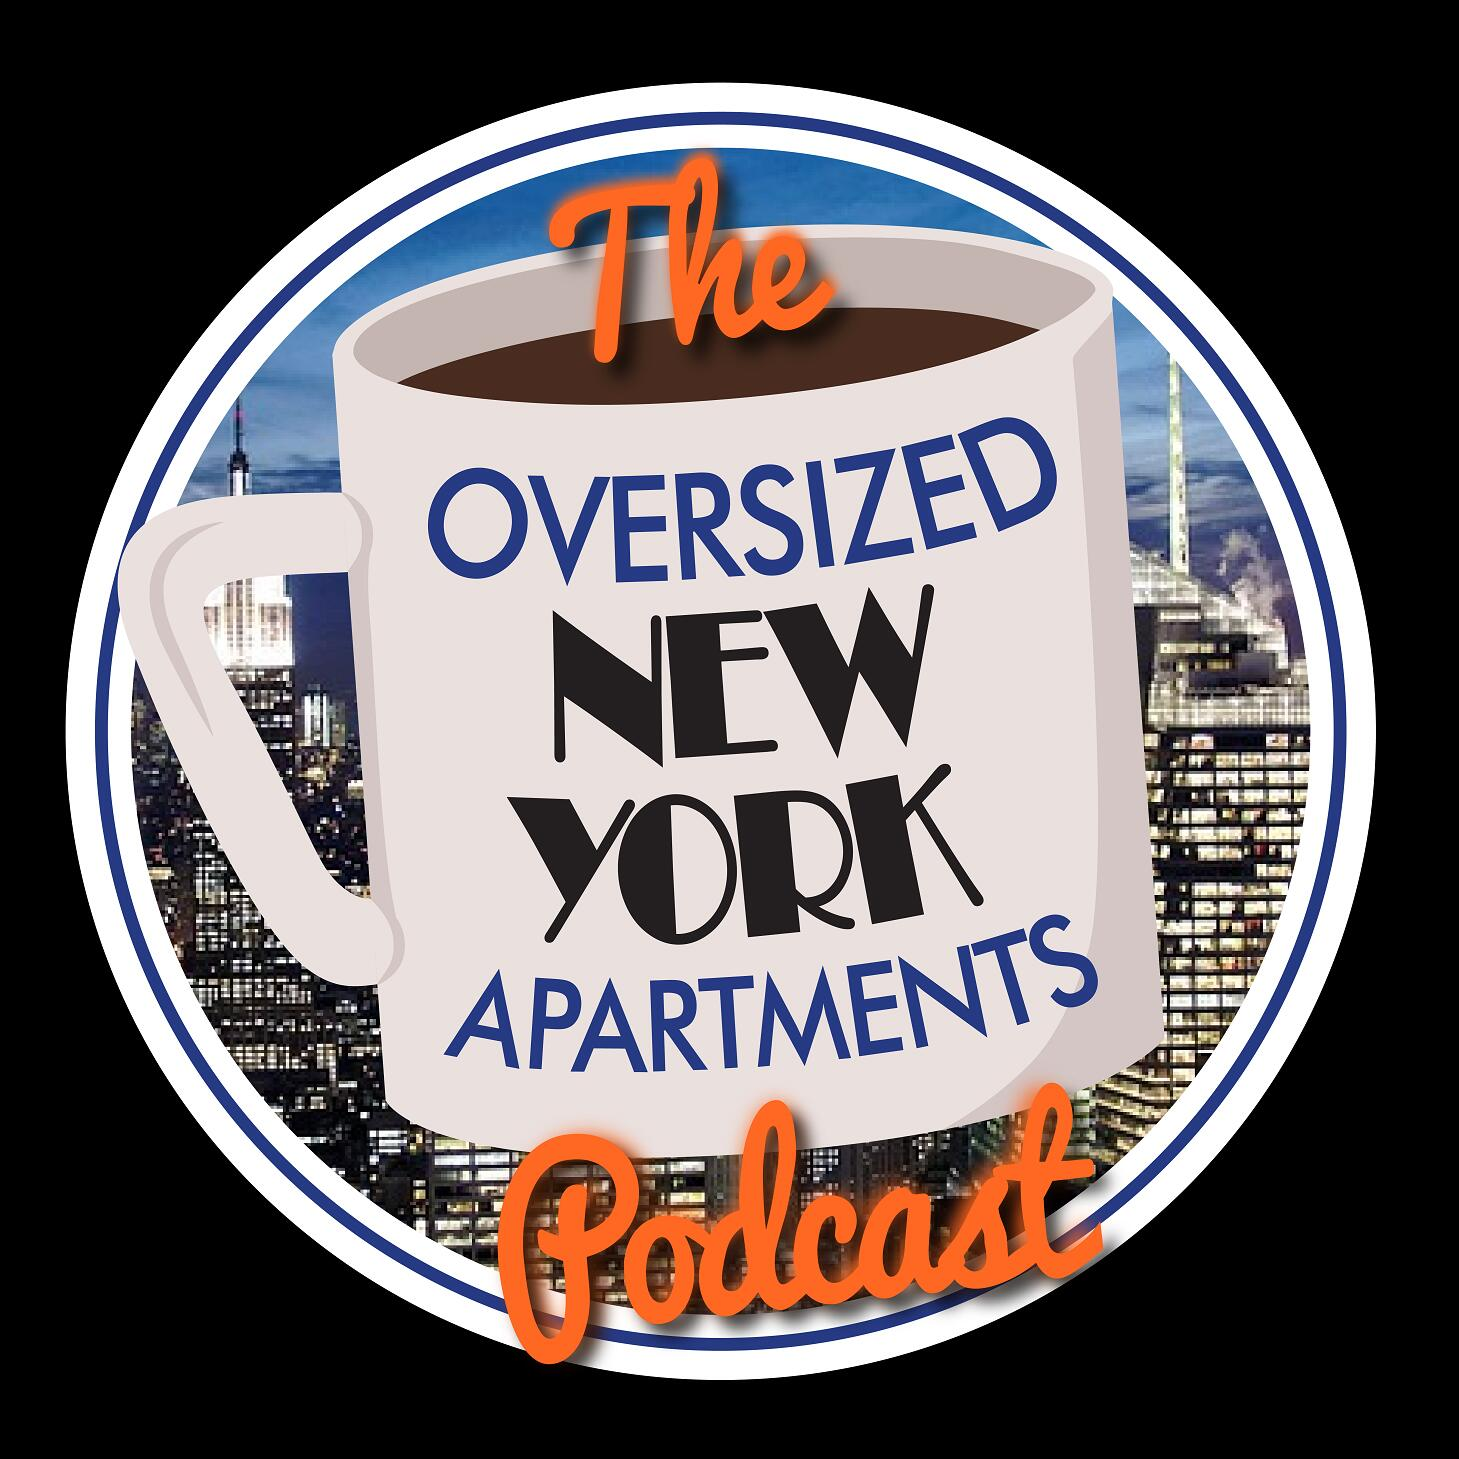 The Oversized New York Apartments Podcast